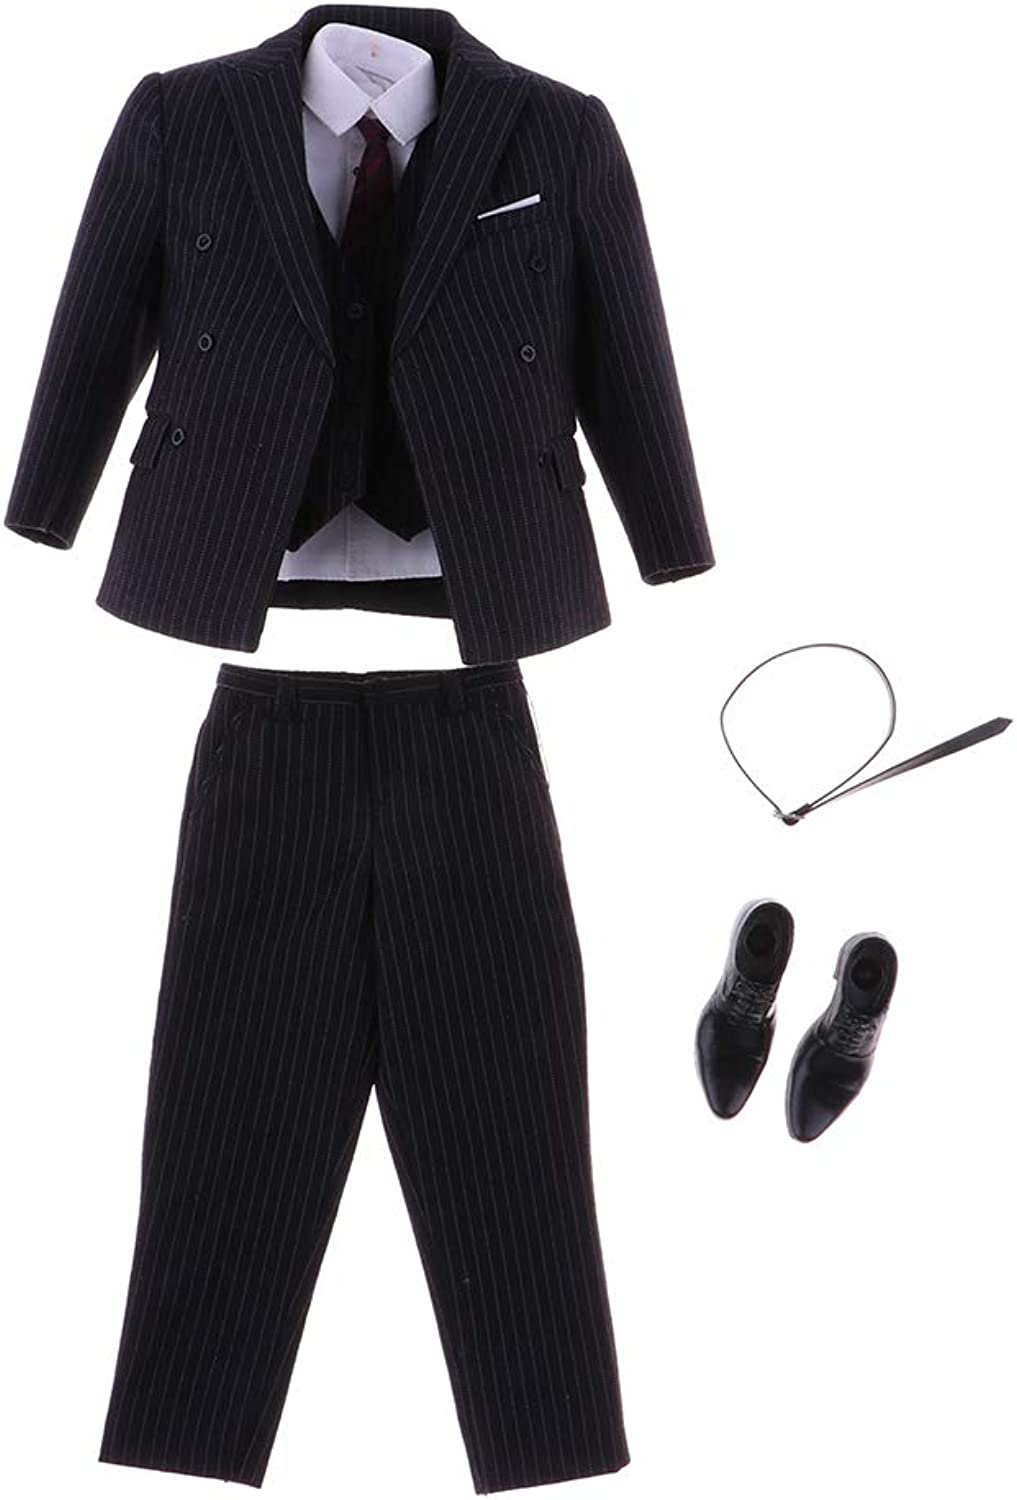 B Blesiya 1 6 Suit Coat Shirt Pants shoes Full Set for 12inch Sideshow Hot Toys Figures  as described, A